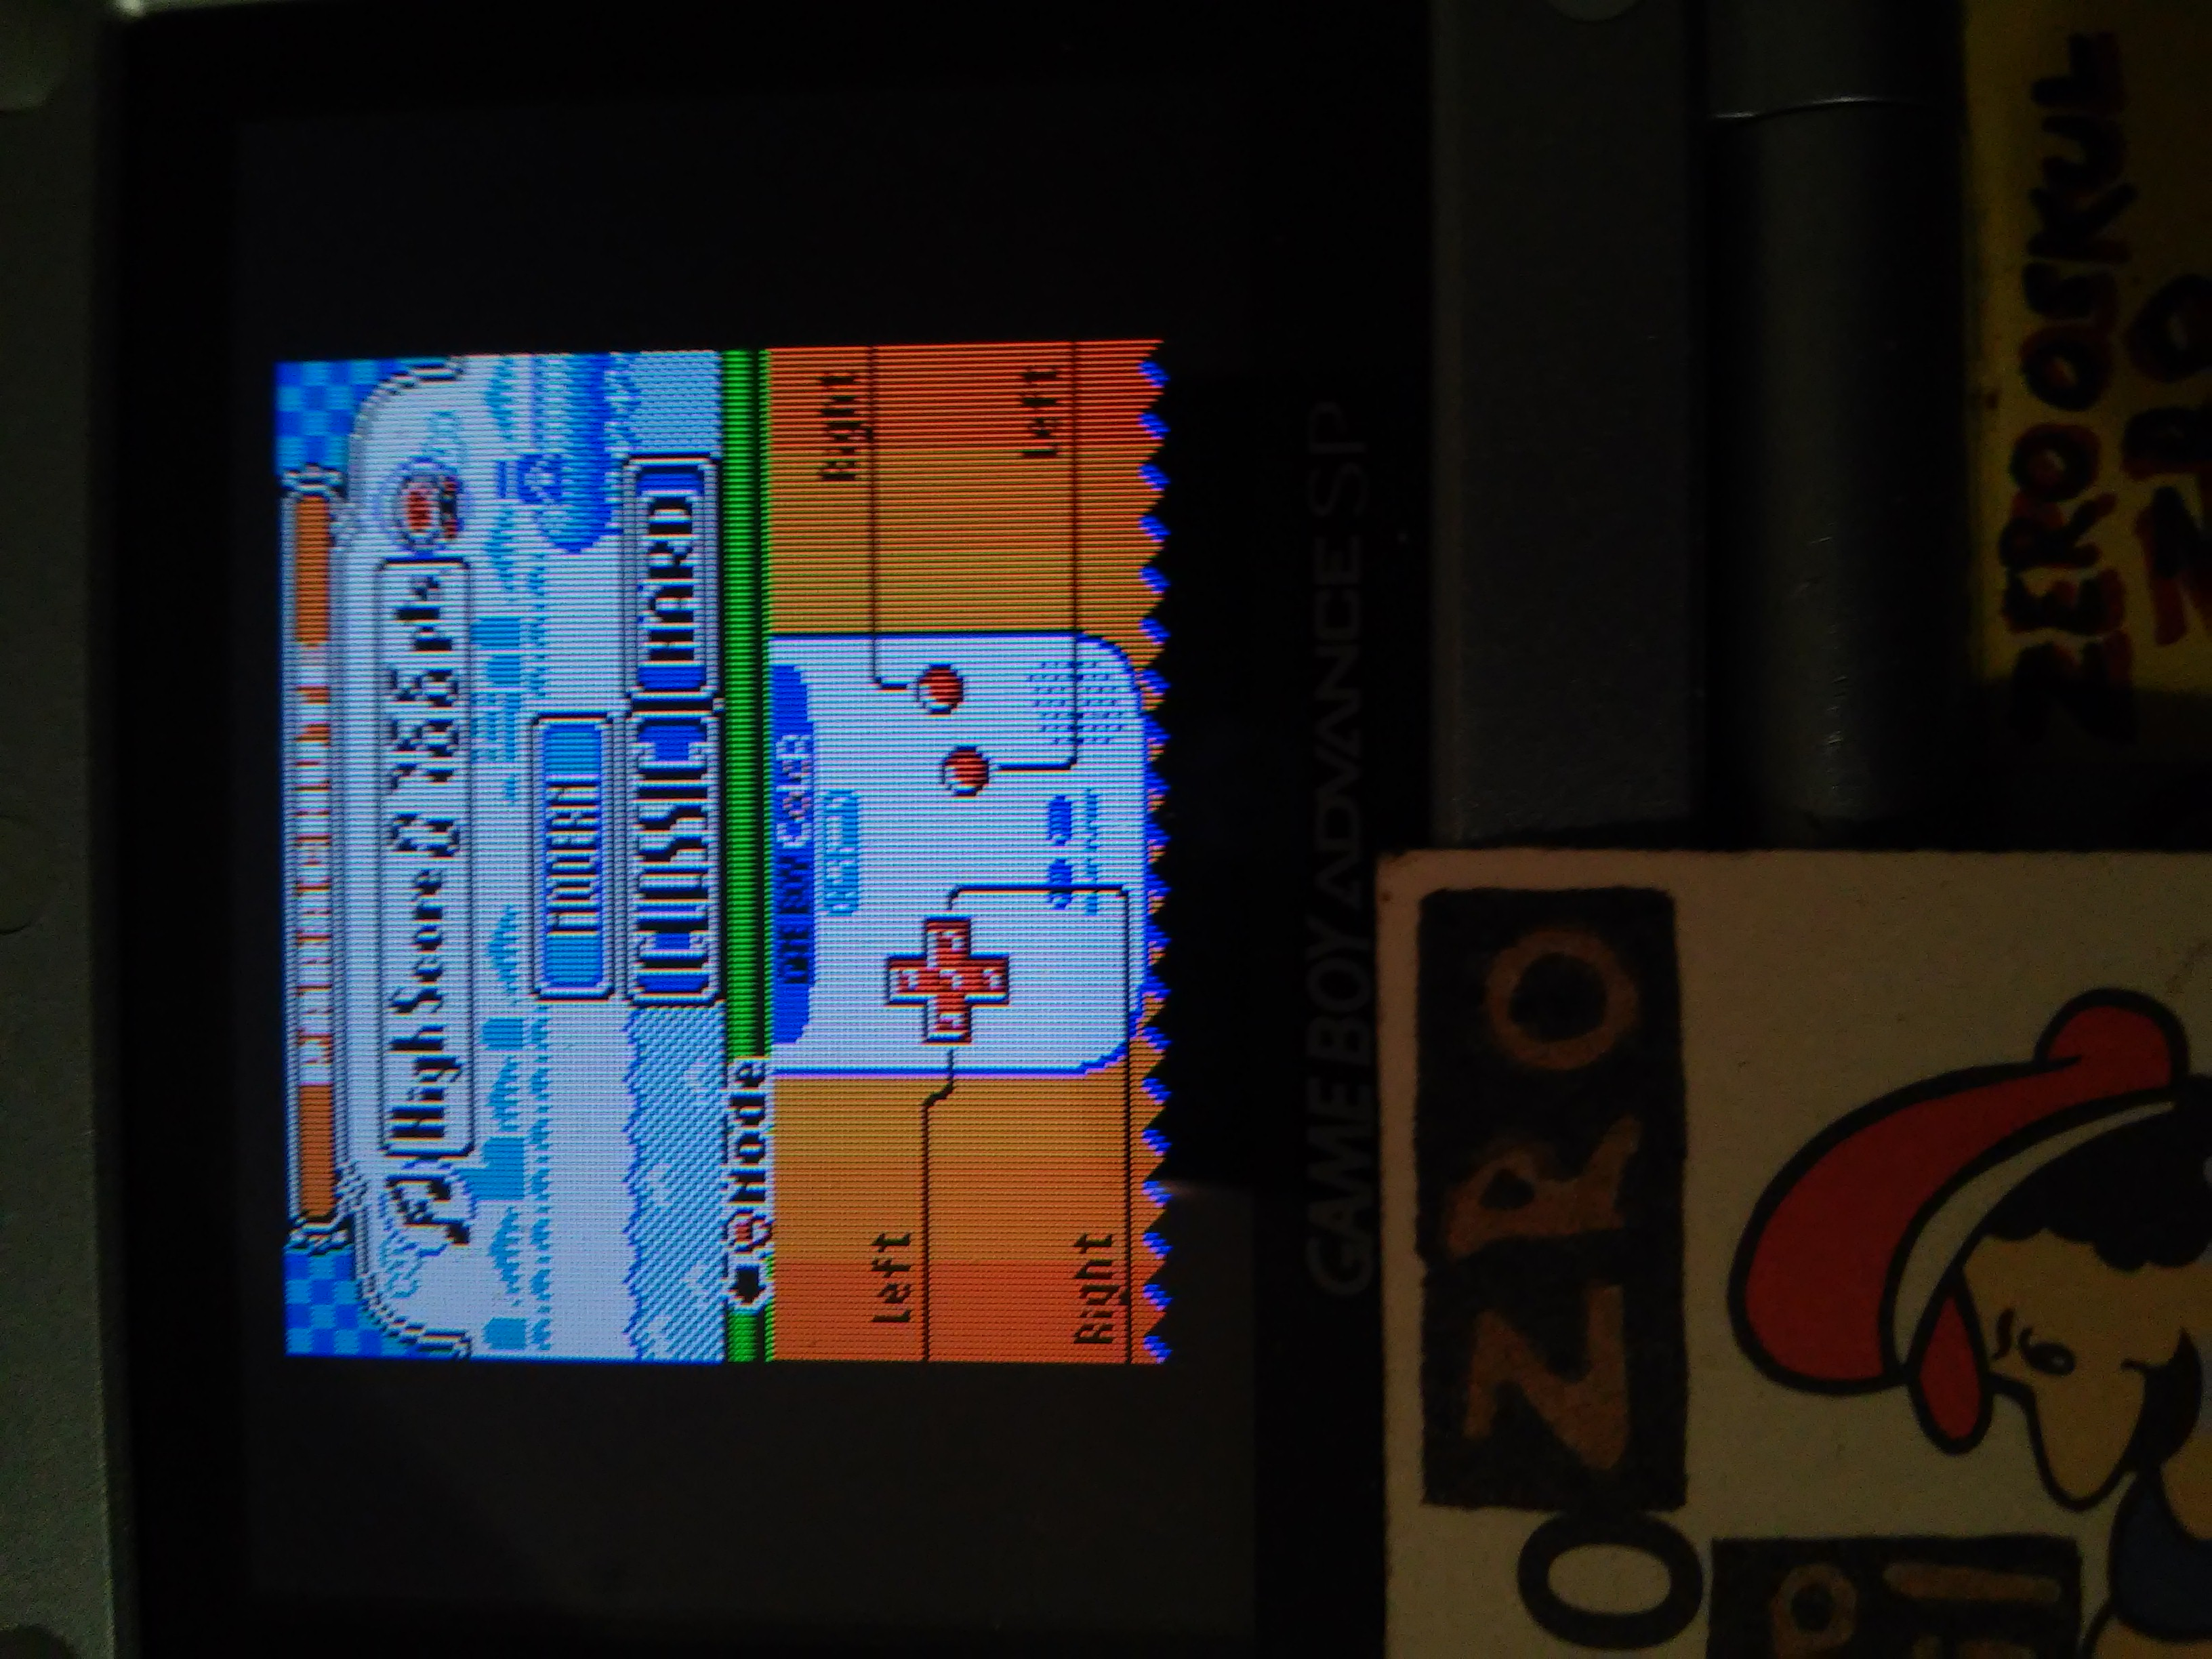 Game & Watch Gallery 2: Parachute: Classic: Hard 766 points